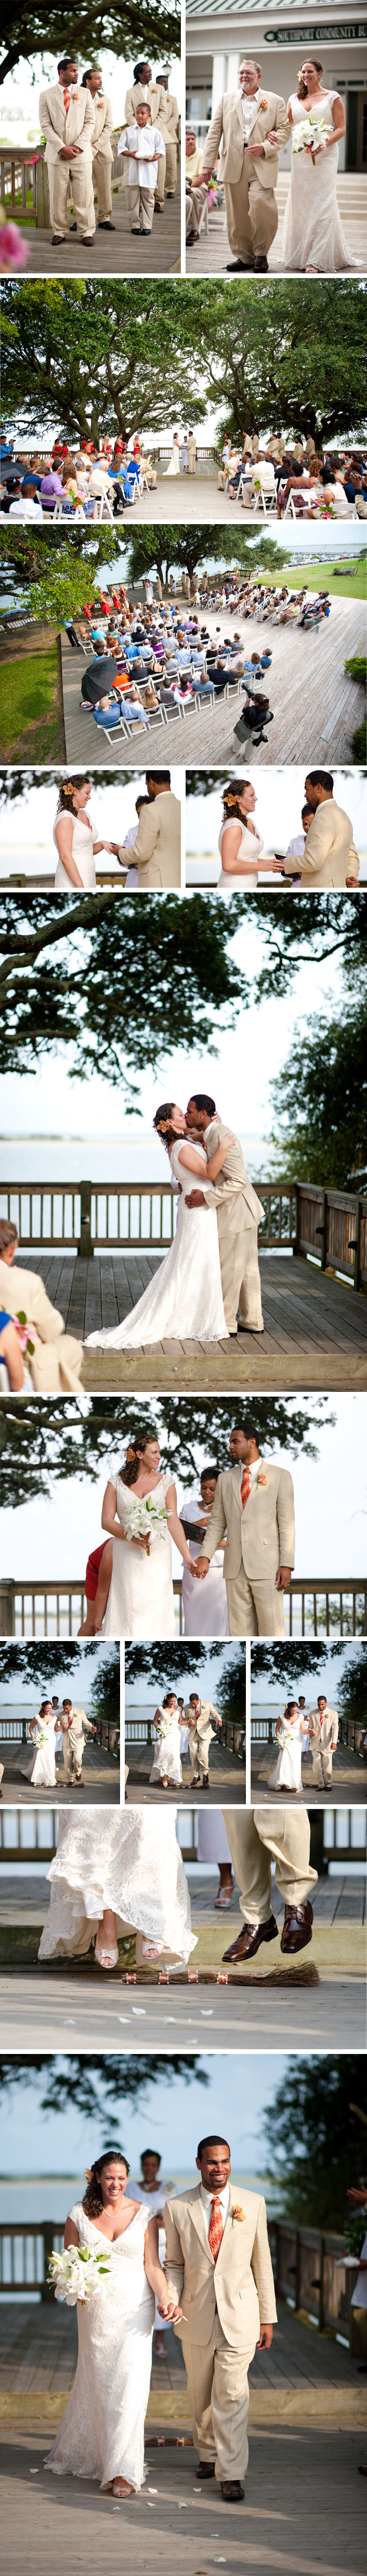 NC wedding ceremony Kara + Joshua | Southport, NC Wedding